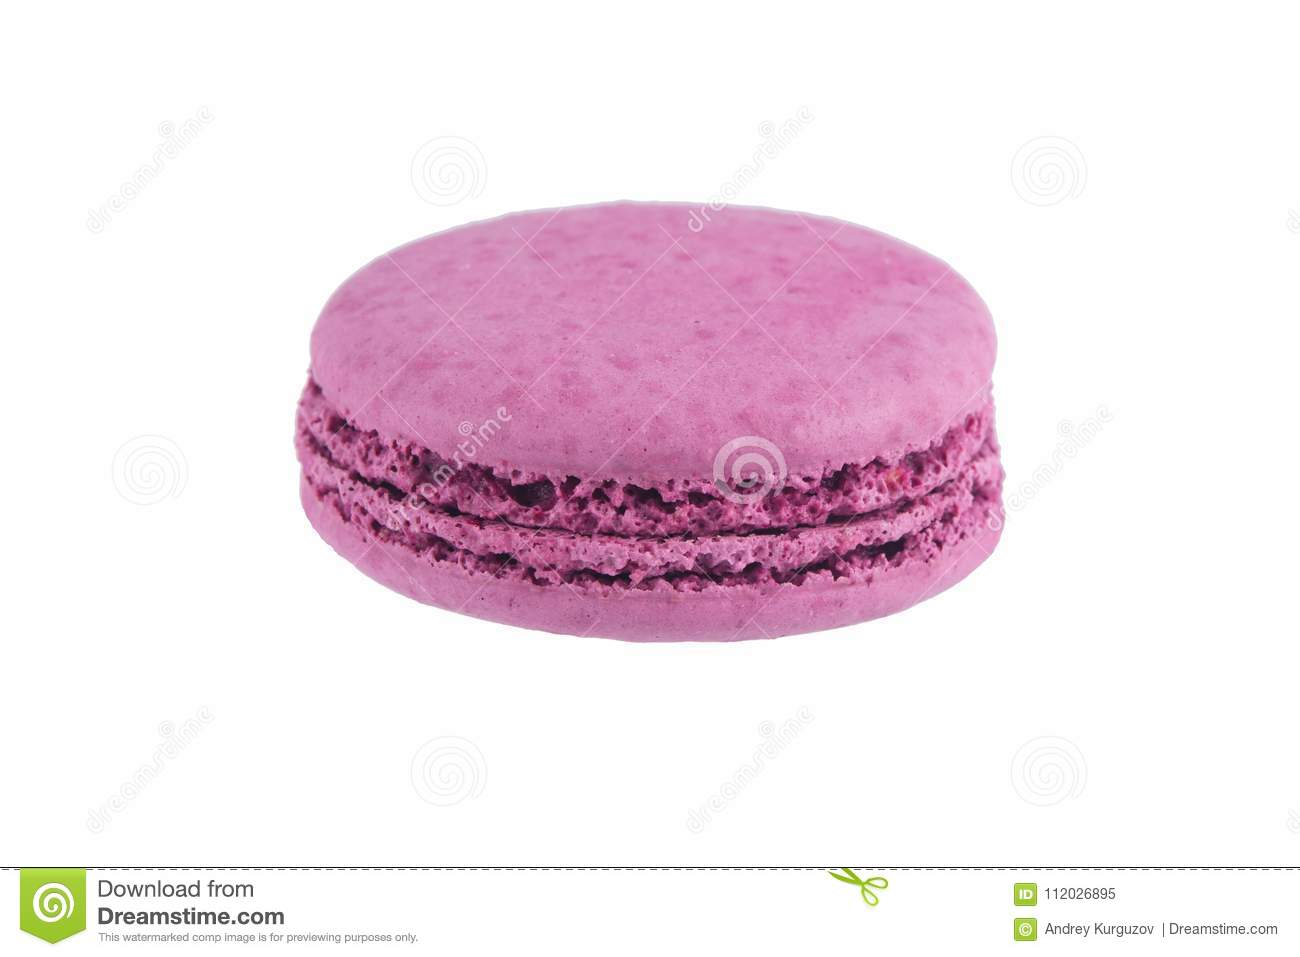 Macaron cookie purple colors, isolated on white background